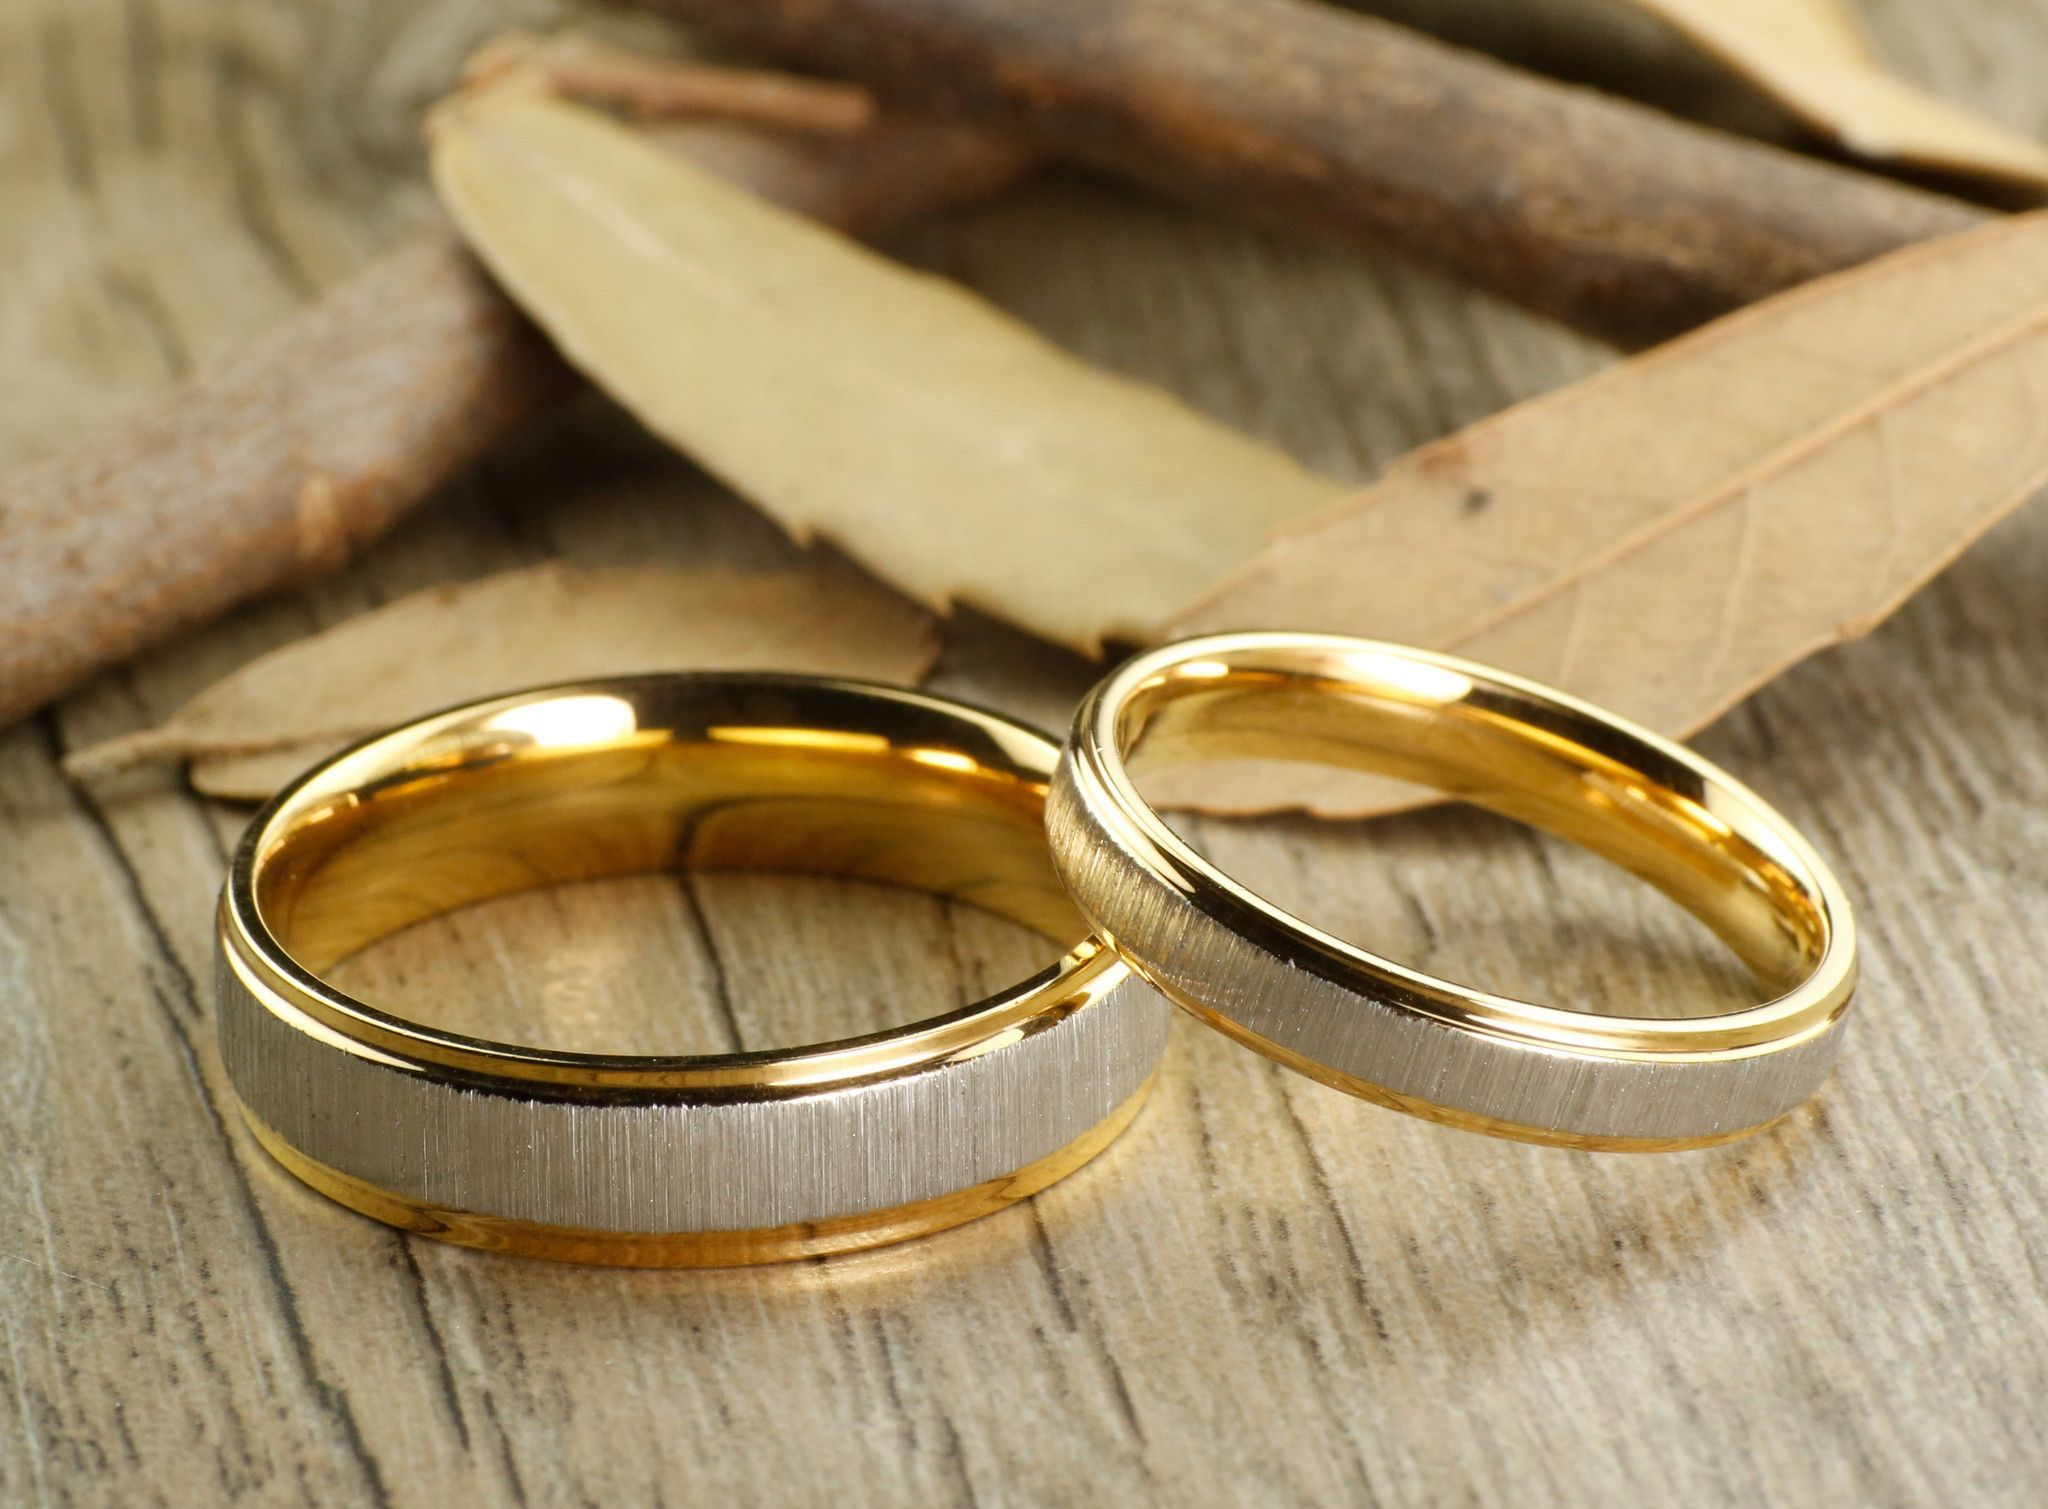 rings unisex gold customized matte you bands yellow for pin are on handmade it engraving band her his meant that these set in titanium couple and is finishing a wedding with handcrafted